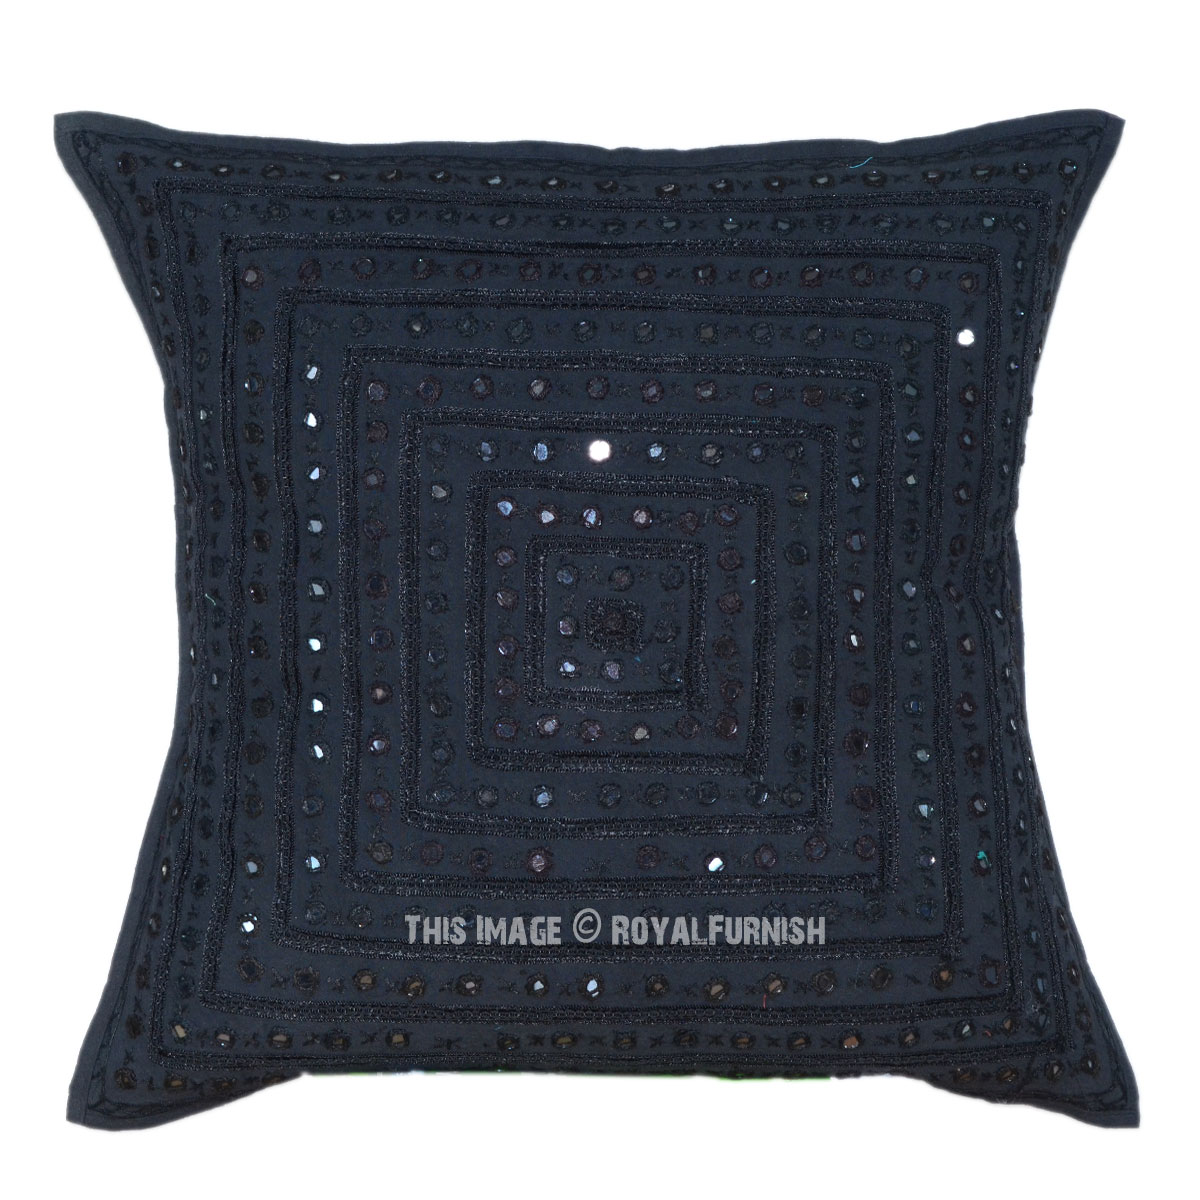 Decorative Pillows With Mirrors : 24x24